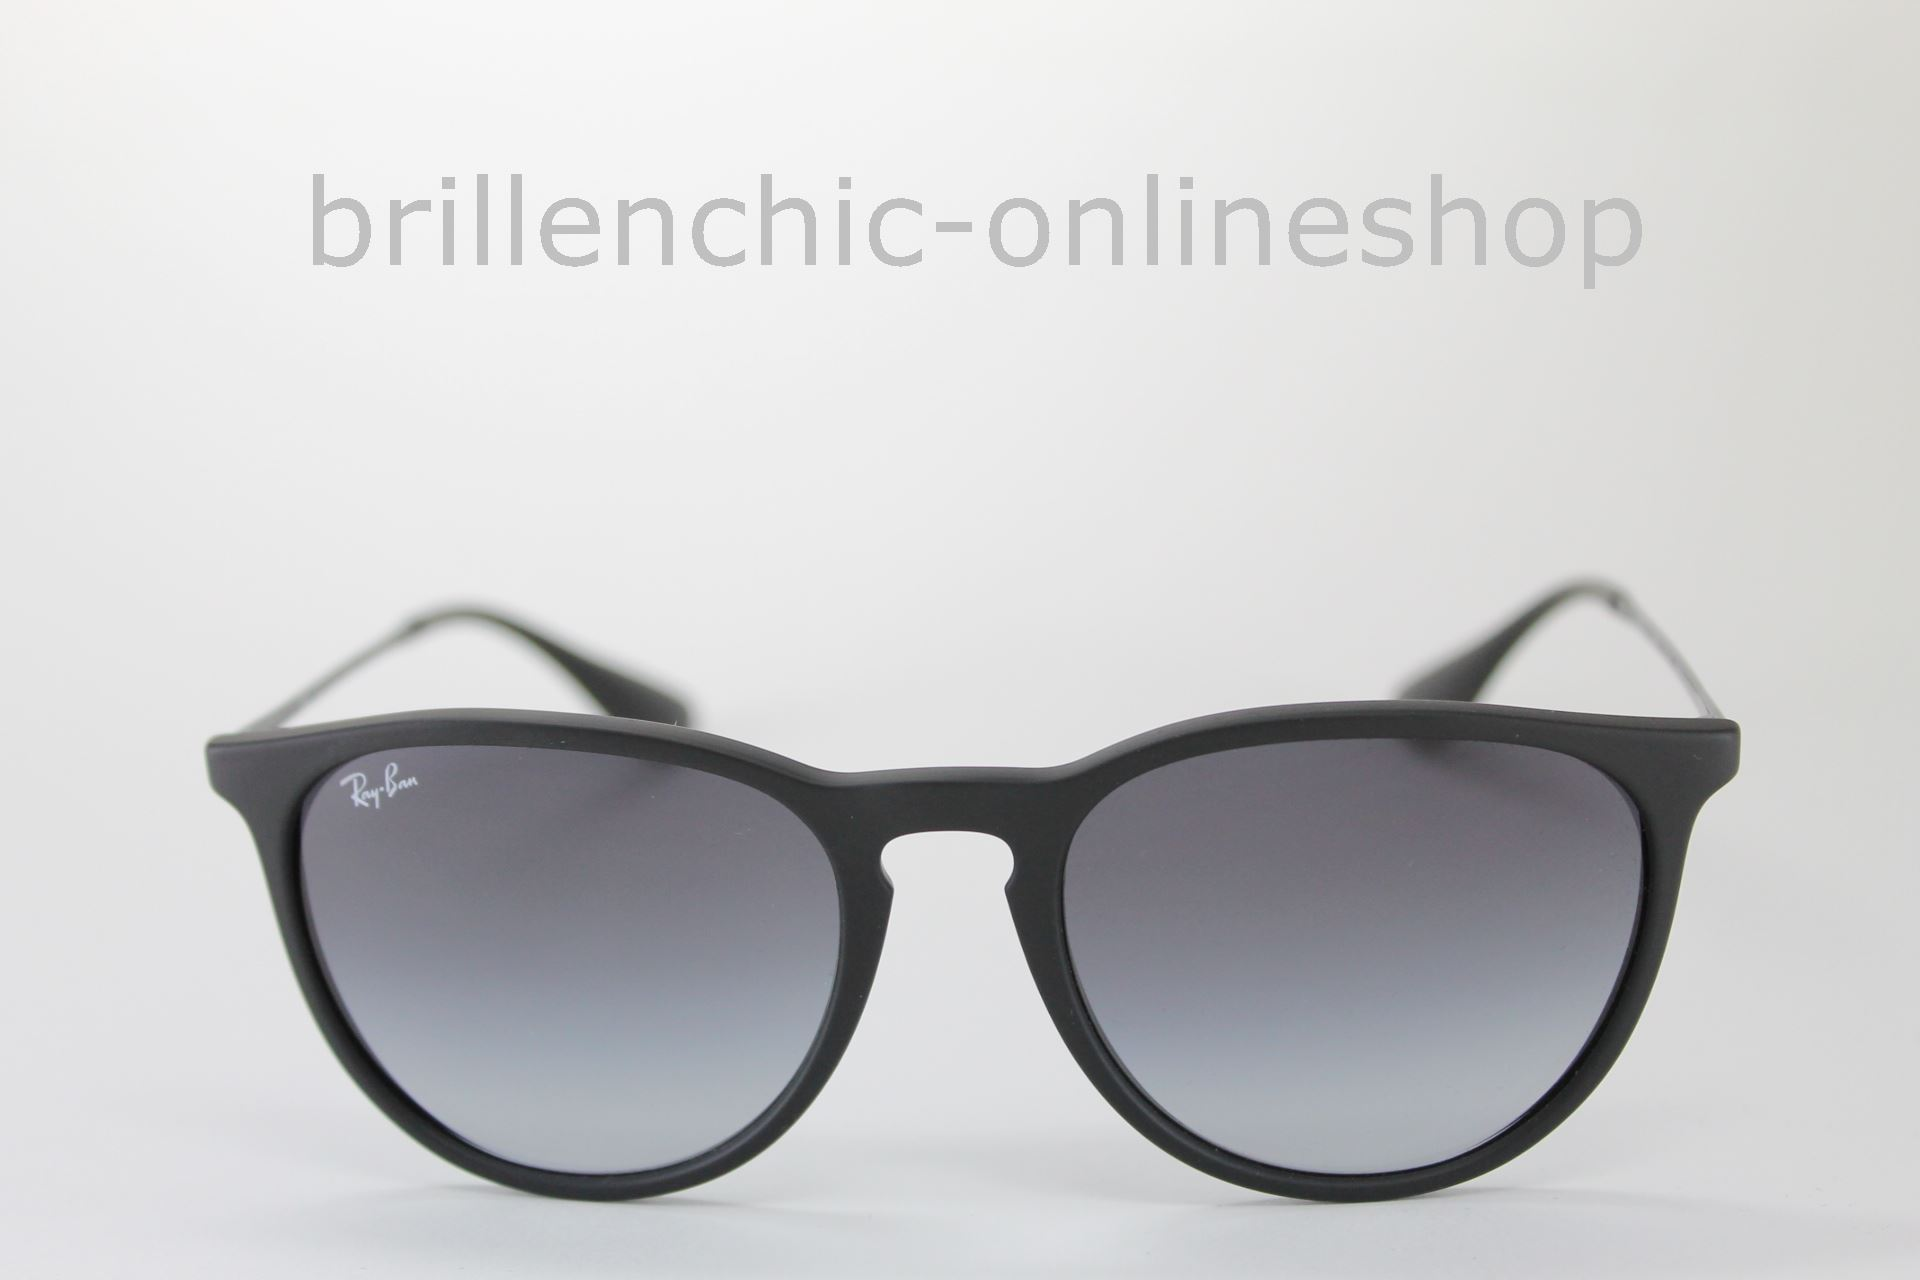 3bacaccf3e Brillenchic-onlineshop in Berlin - Ray Ban ERIKA RB 4171 622 8G